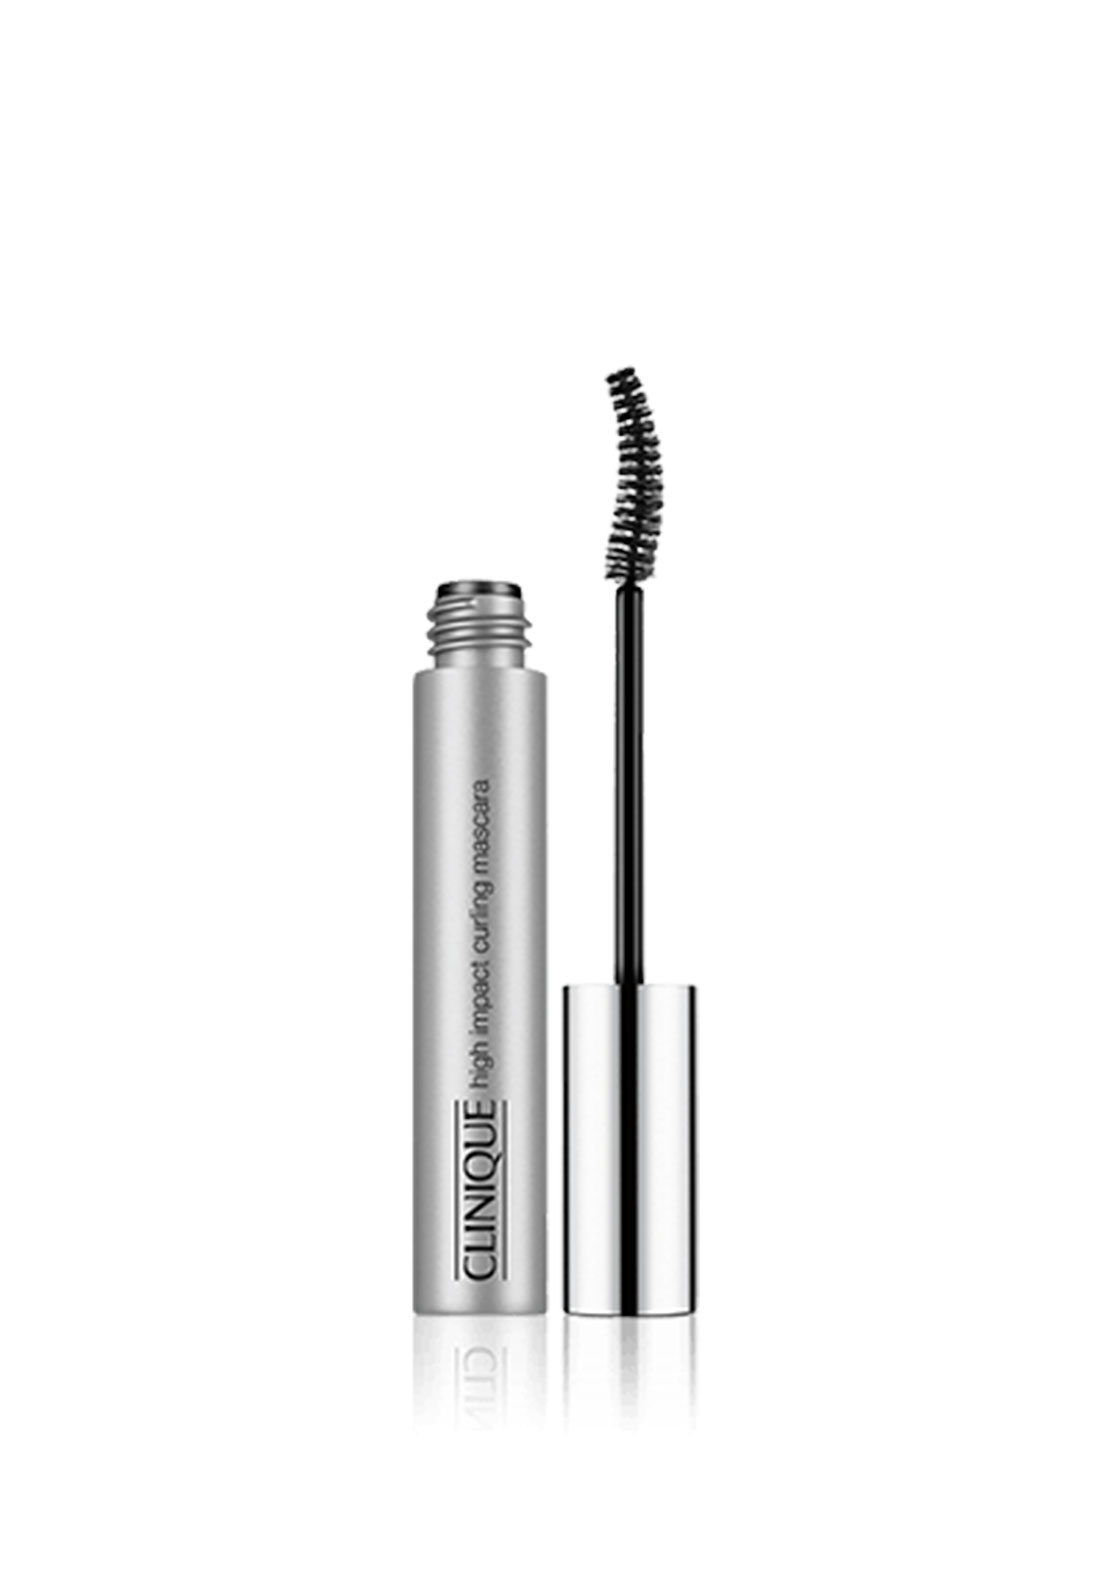 Clinique High Impact Curling Mascara, 02 Black/ Brown